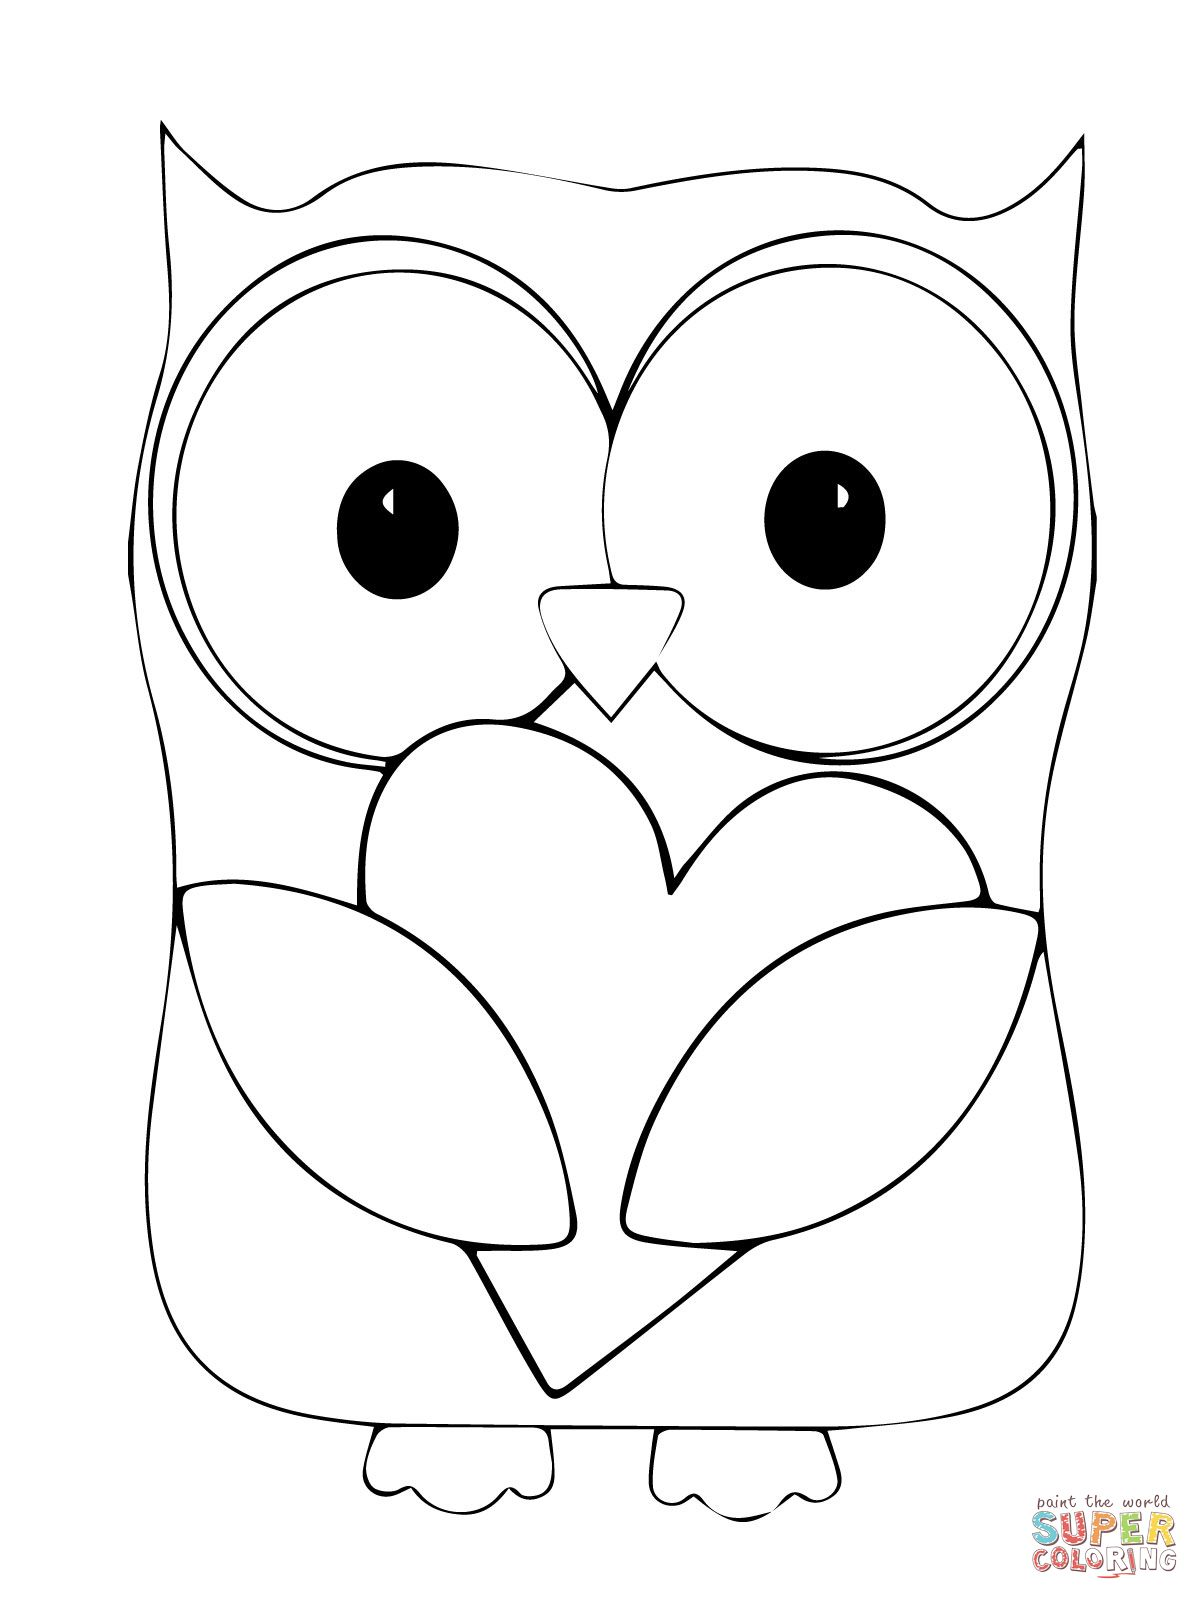 Valentine Day Owl Hugging a Heart | Super Coloring | Quilt: Owls ...